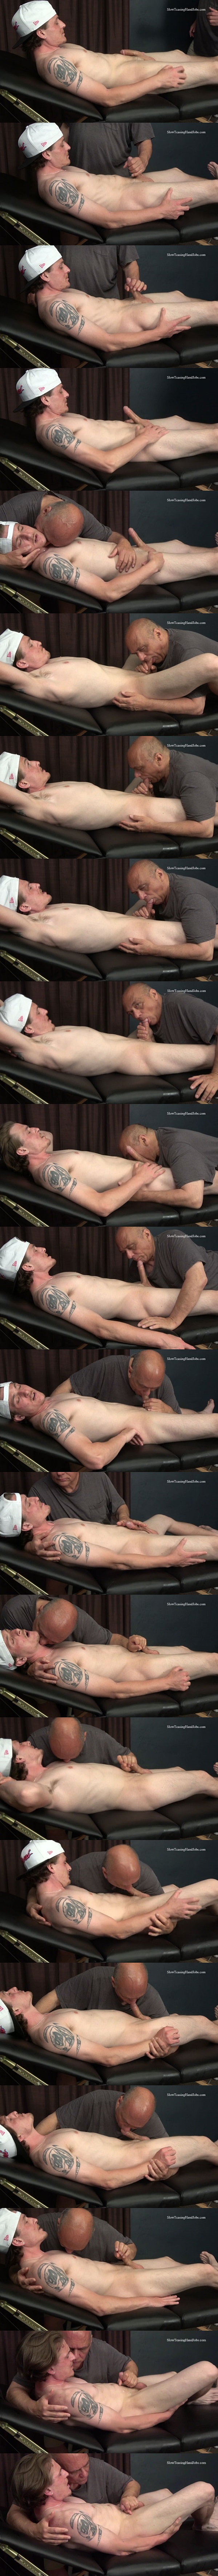 Hot inked straight jock Romeo gets slowly teased and wanked until Romeo gets jerked off by master Rich in Overwhelmed with Arousal and Frustration at Slowteasinghandjobs 01